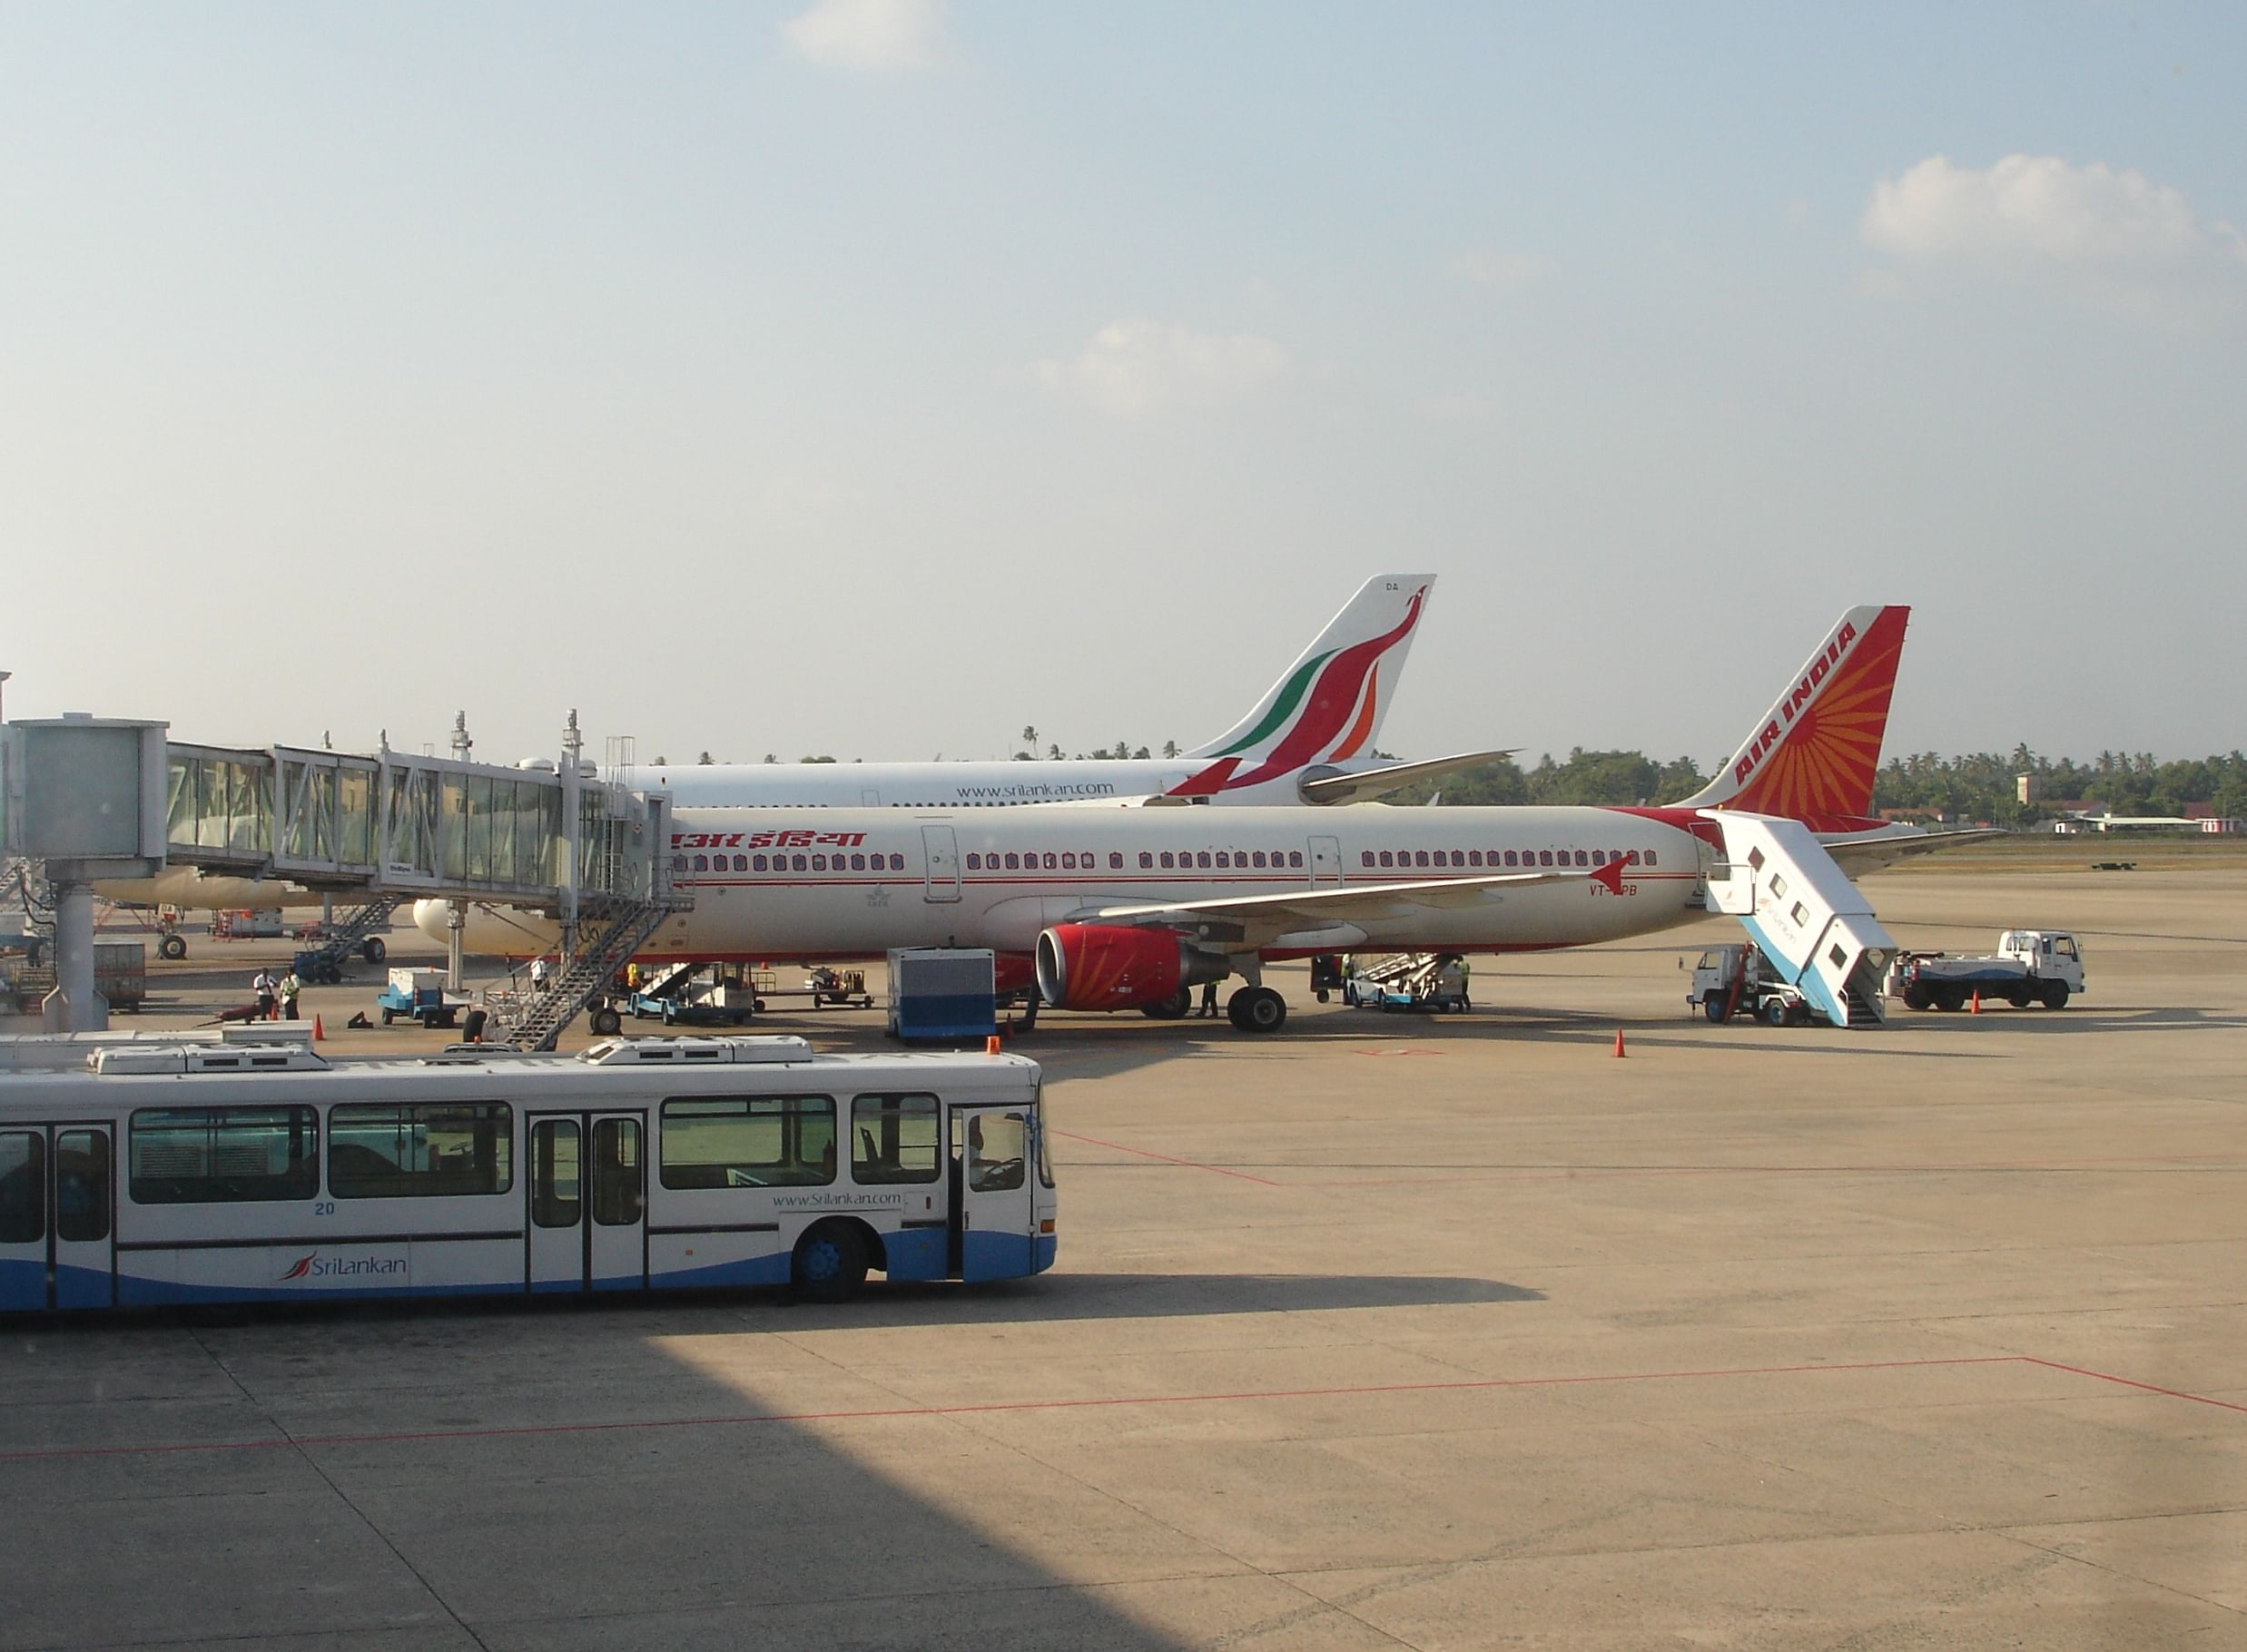 India - airports with international status